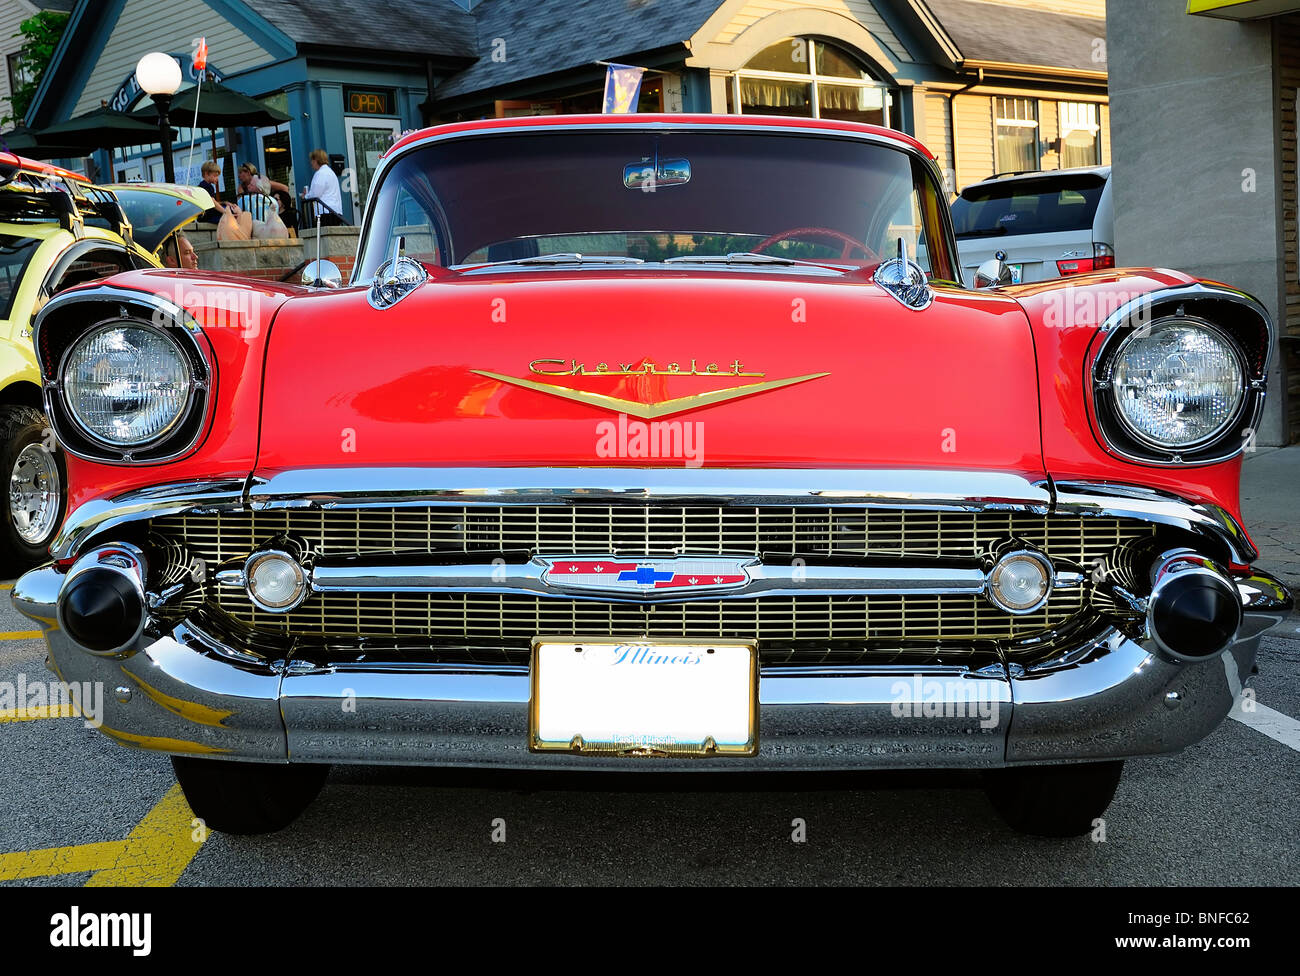 1957 Chevrolet Belair Stock Photos Chevy Bel Air Station Wagon Beautifully Restored Image